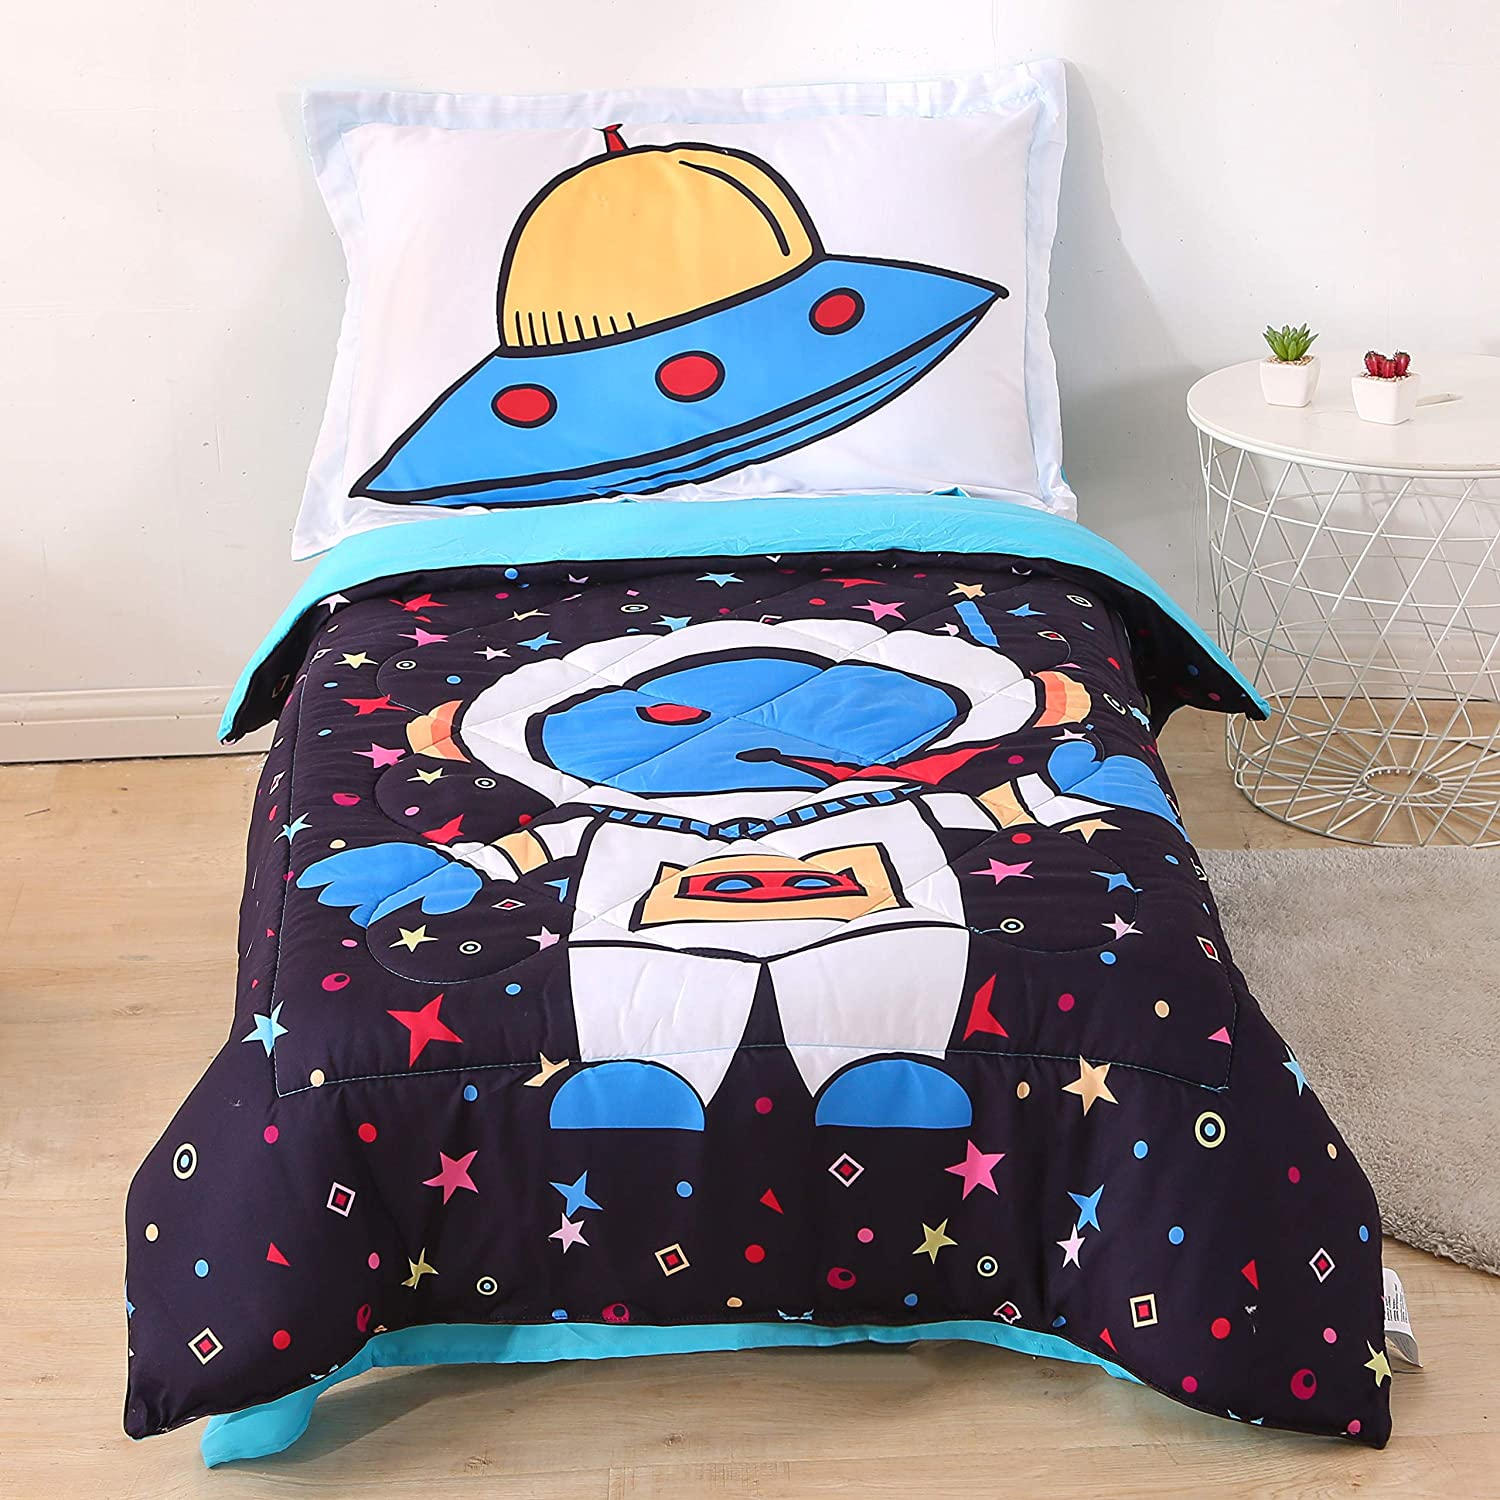 Wowelife Astronaut Toddler Bedding Set 4 Piece Black Toddler Bed Set with Comforter, Flat Sheet, Fitted Sheet and PillowcaseAstronaut)